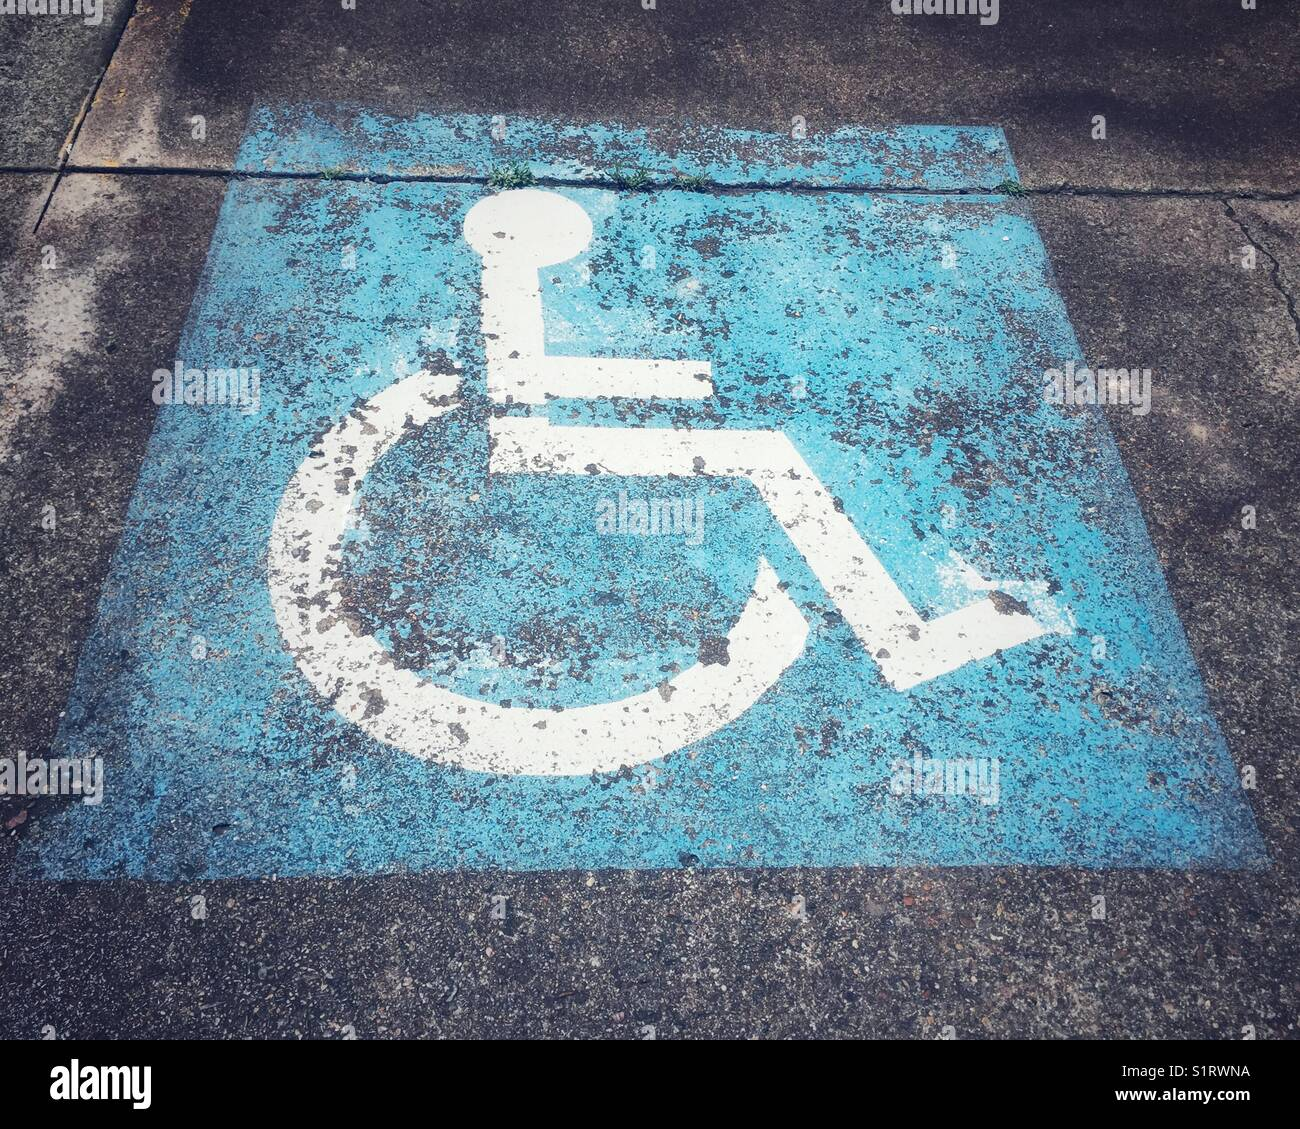 Disable wheelchair symbol stencil in white on blue square in car park. Closeup communication sign on disability - Stock Image